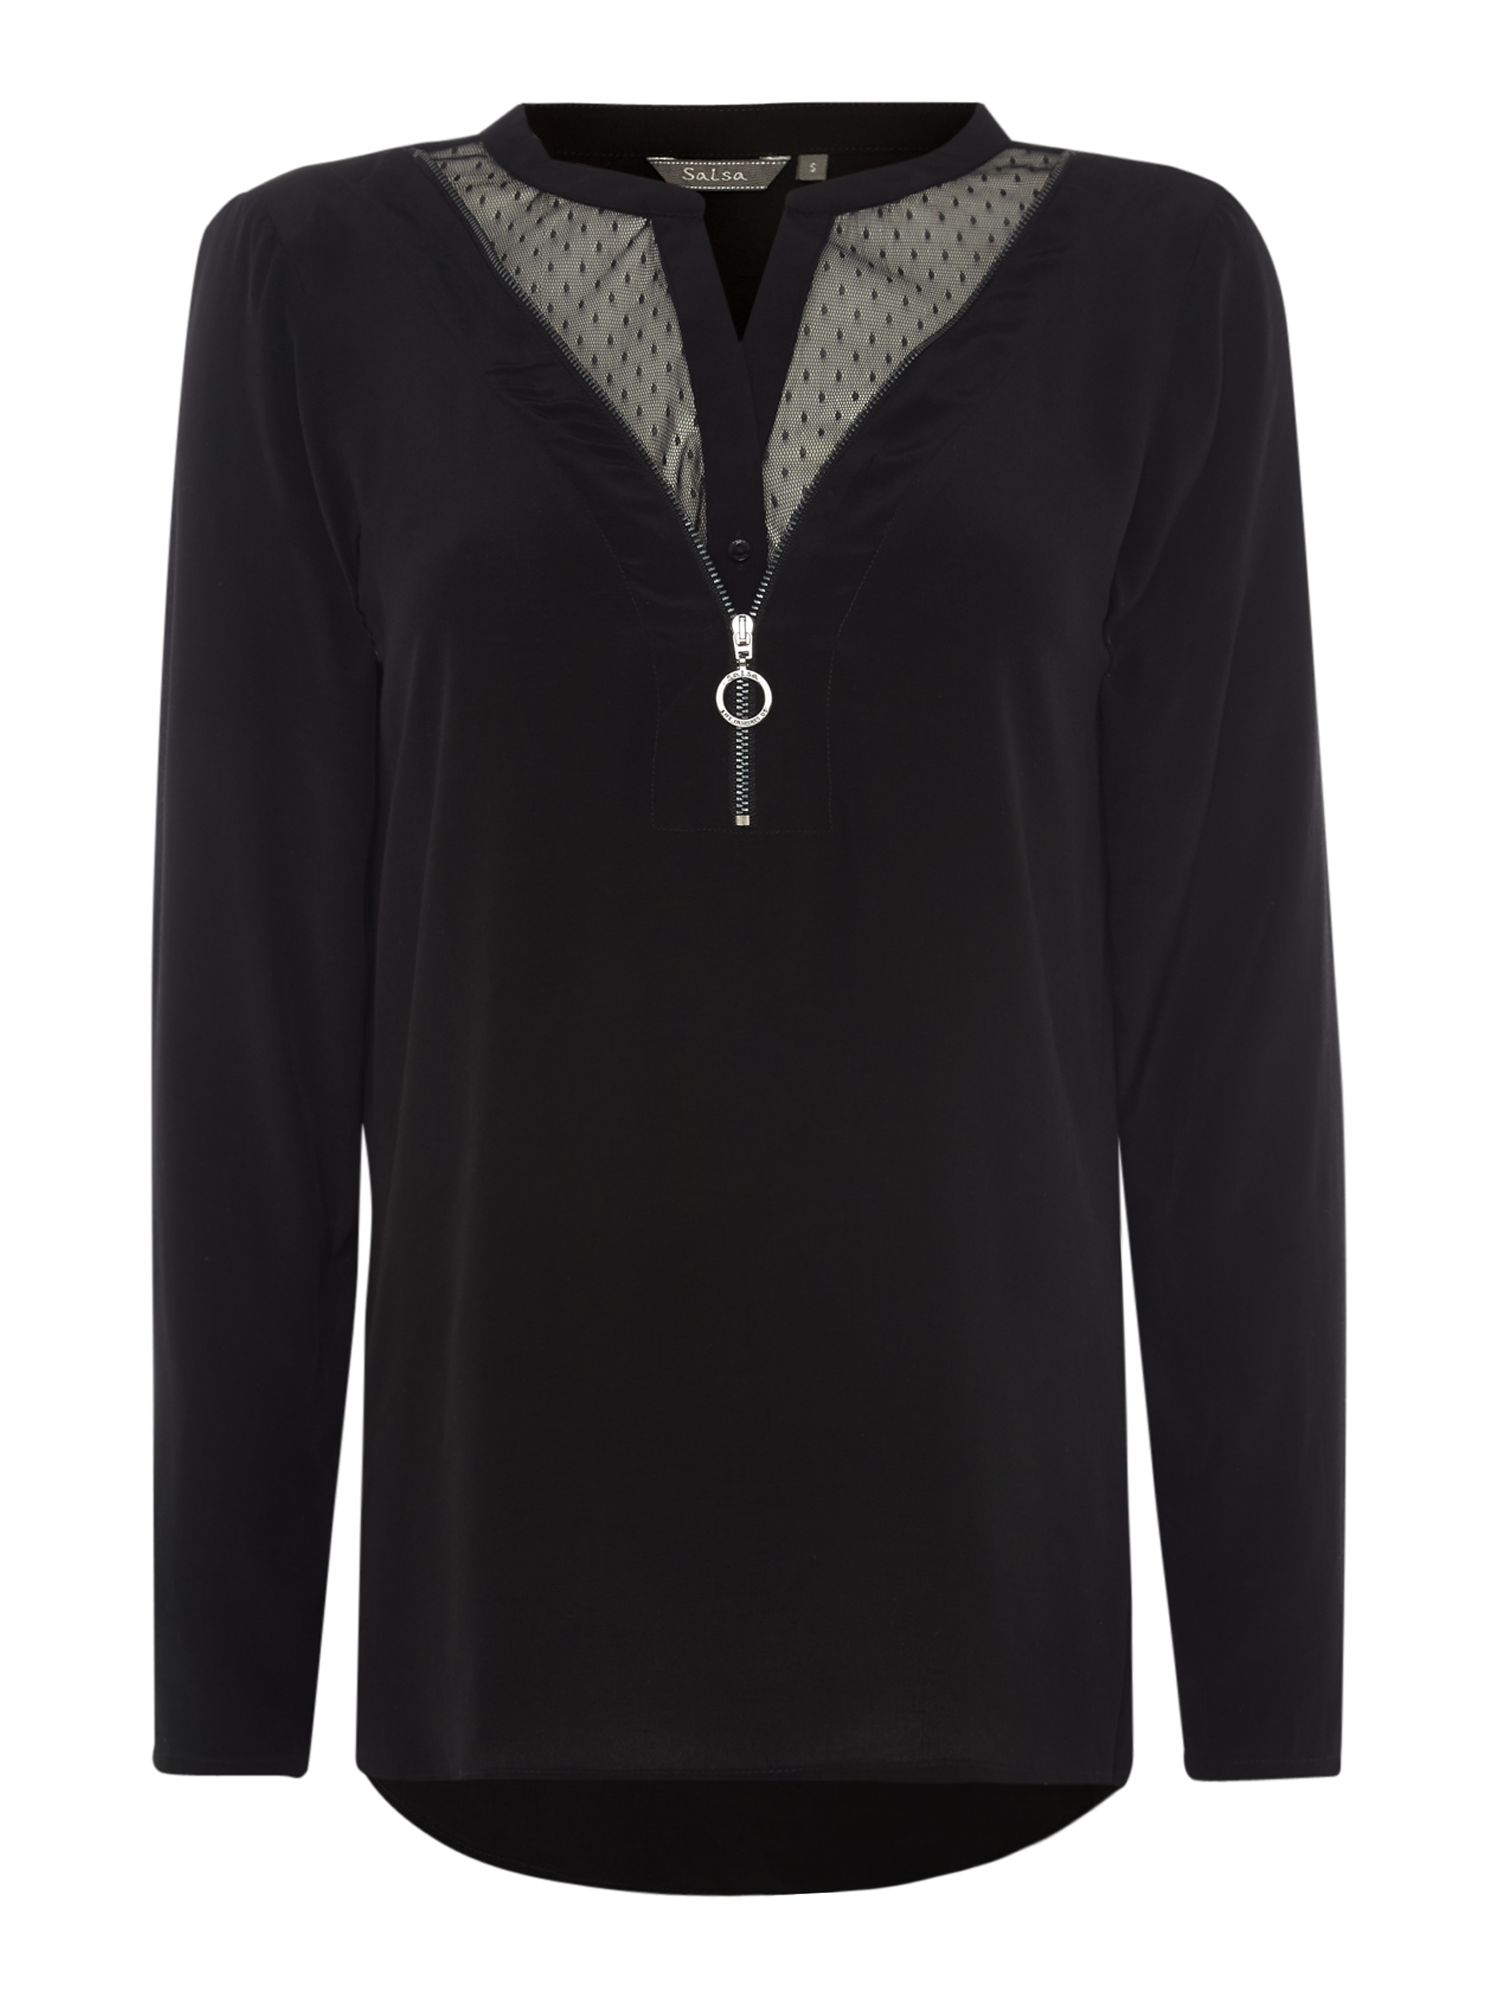 Long Sleeve Mesh Detail Zip Up Blouse, Black